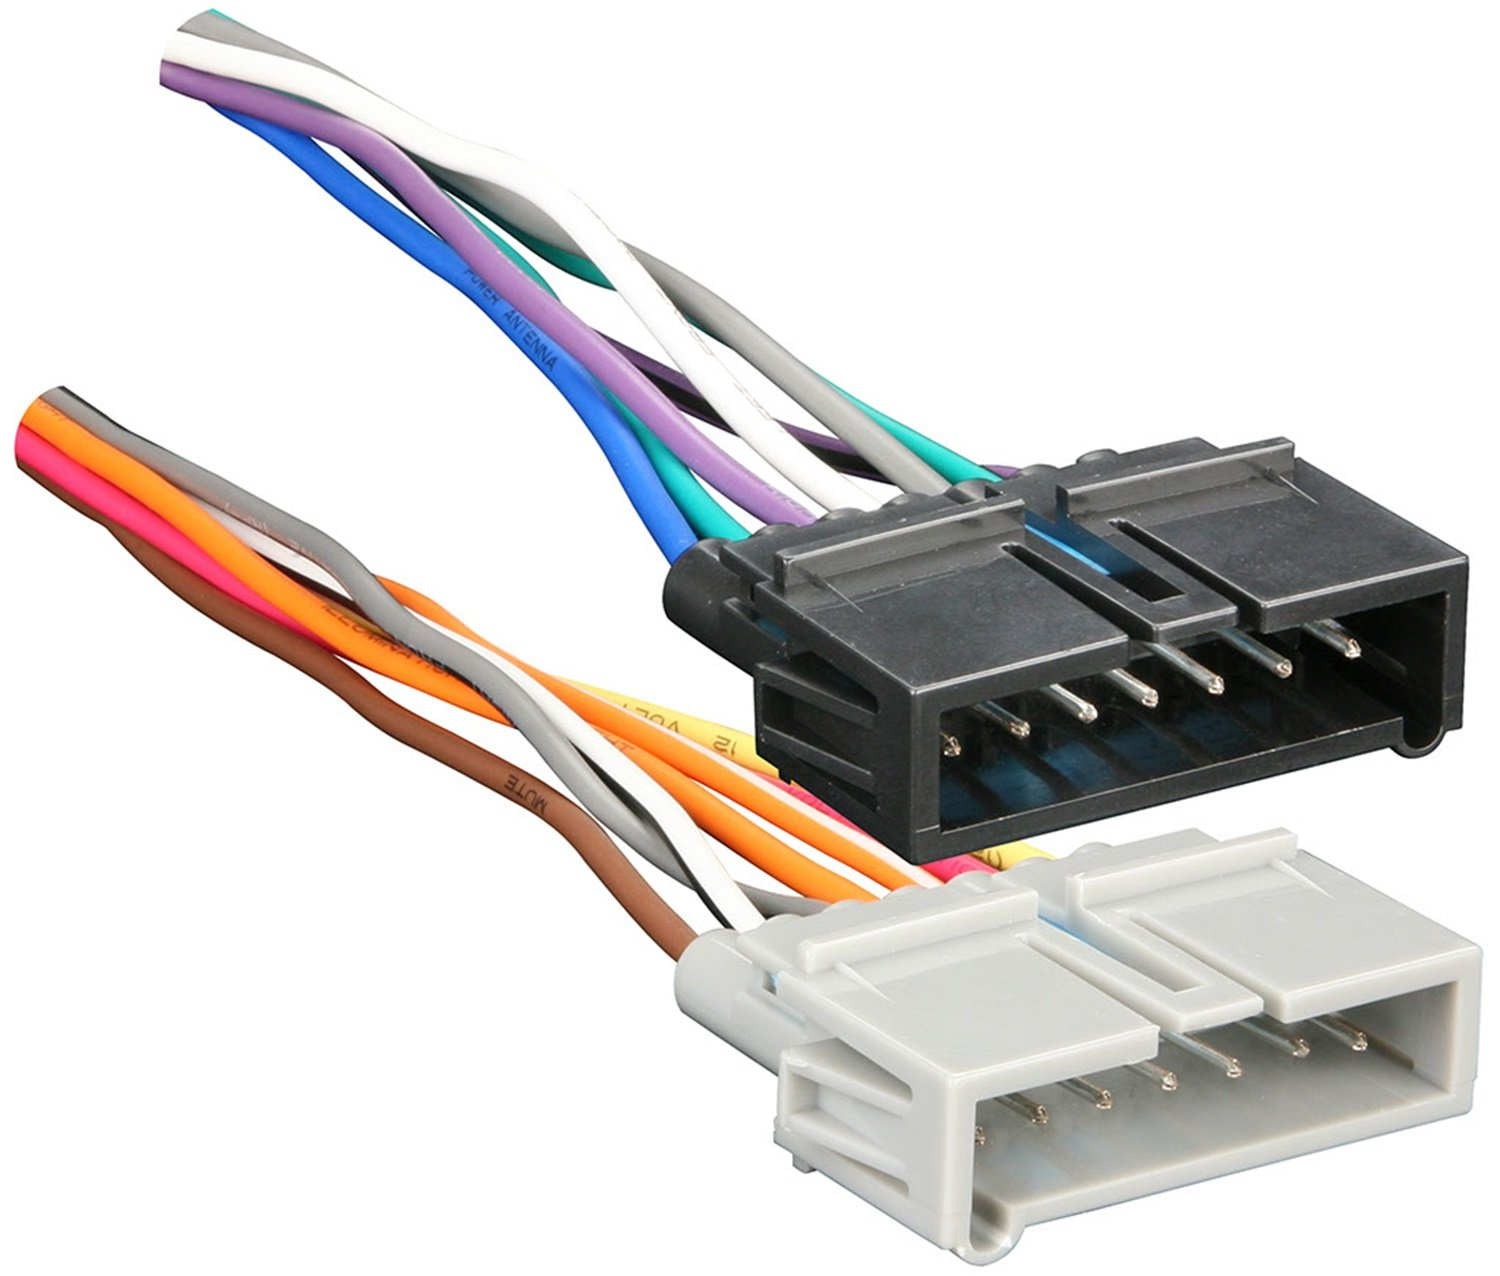 71QUZlC QWL._SL1500_ amazon com metra 70 1817 radio wiring harness for chrysler jeep  at gsmx.co